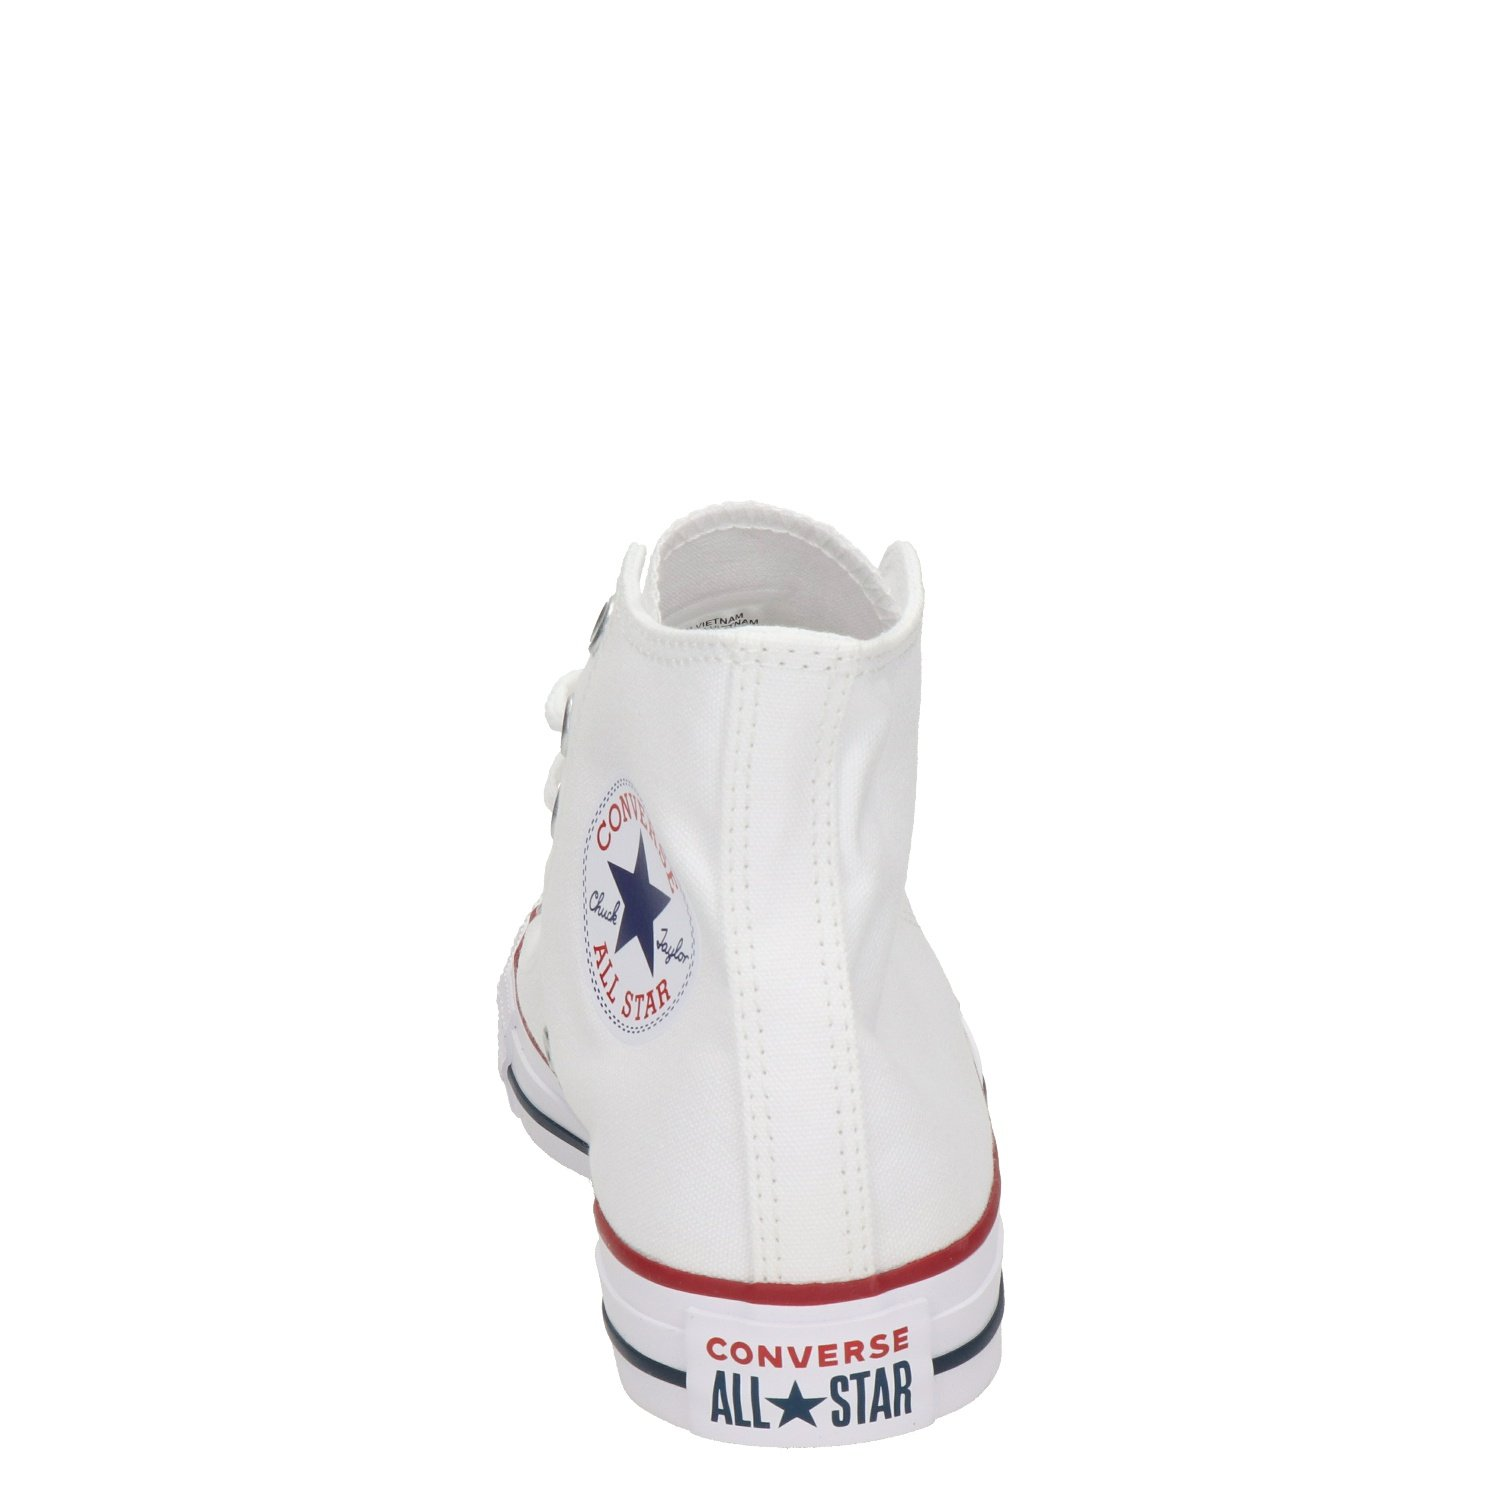 a83c9010742 Converse All Star Hi unisex hoge sneakers. Previous